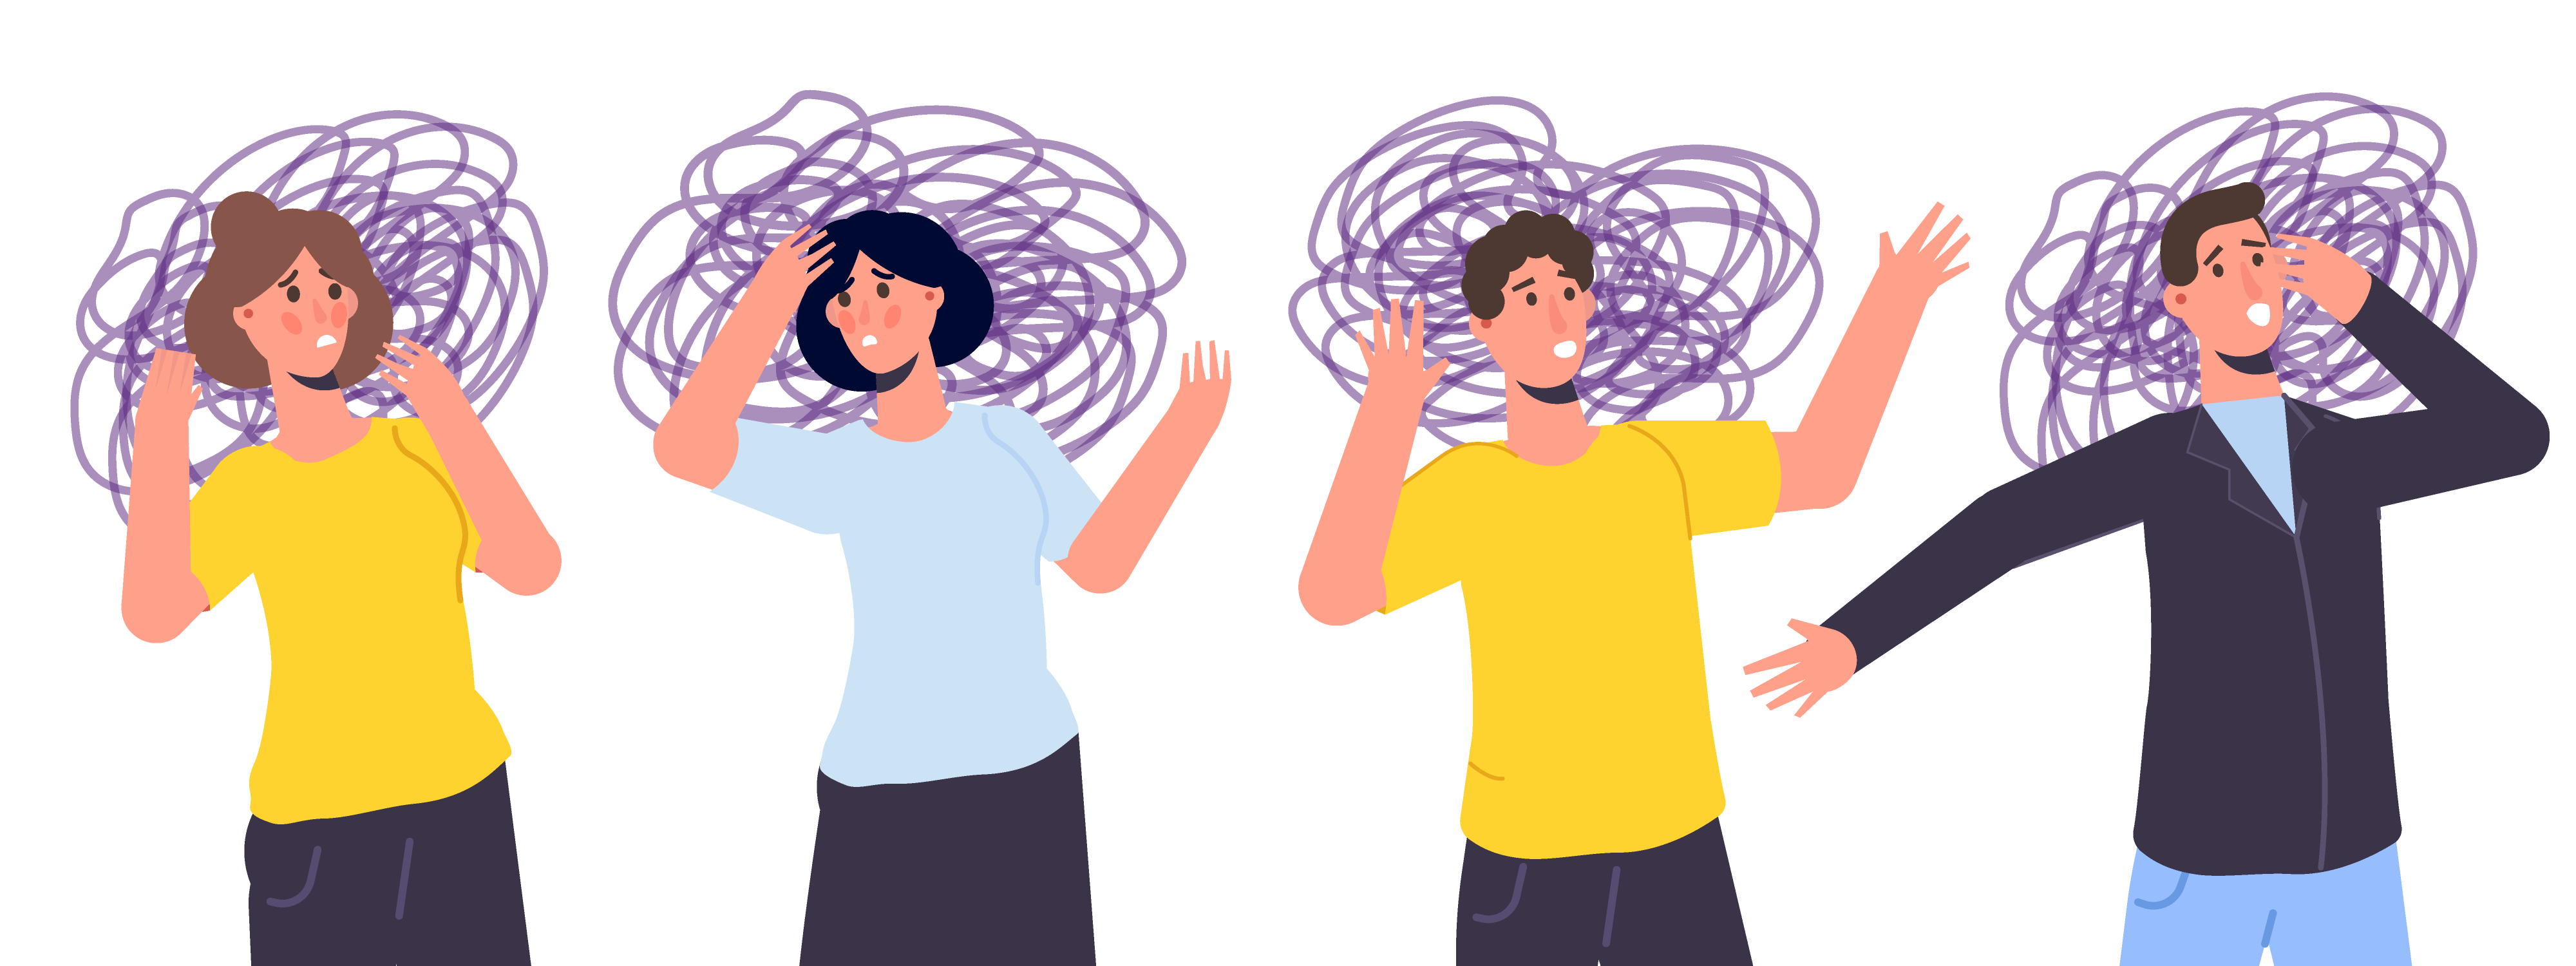 Illustration of 2 men and 2 women with scribbles around their heads